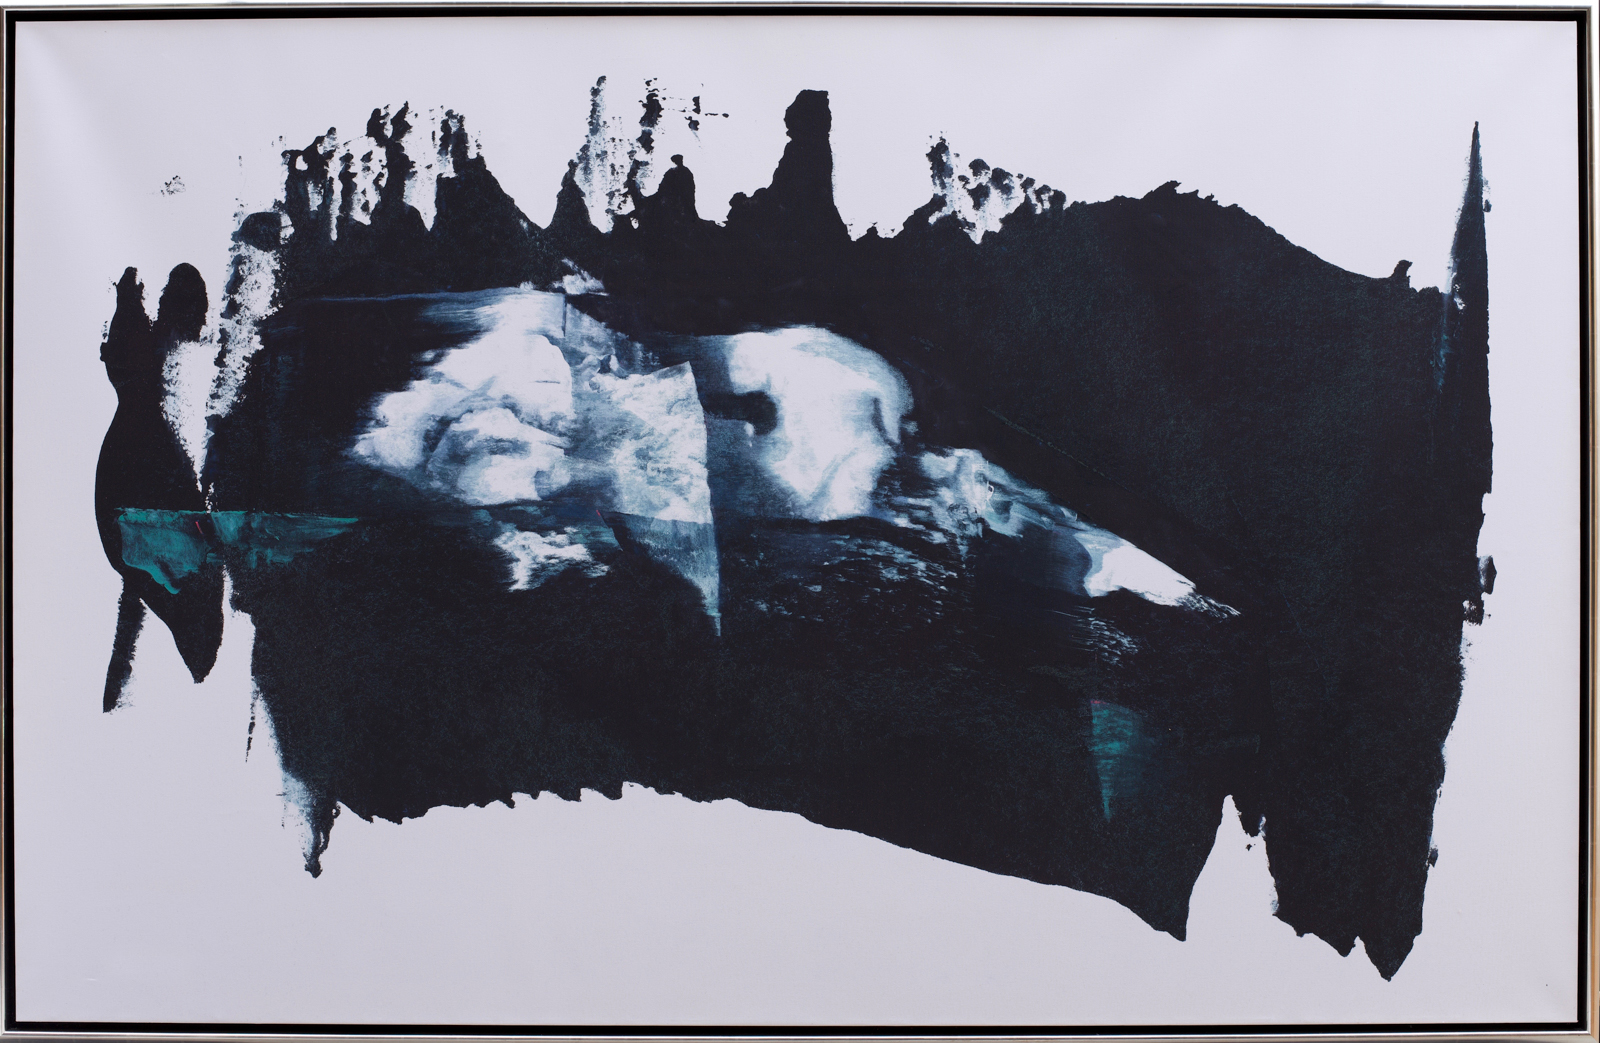 Terry Black | Painting #1116